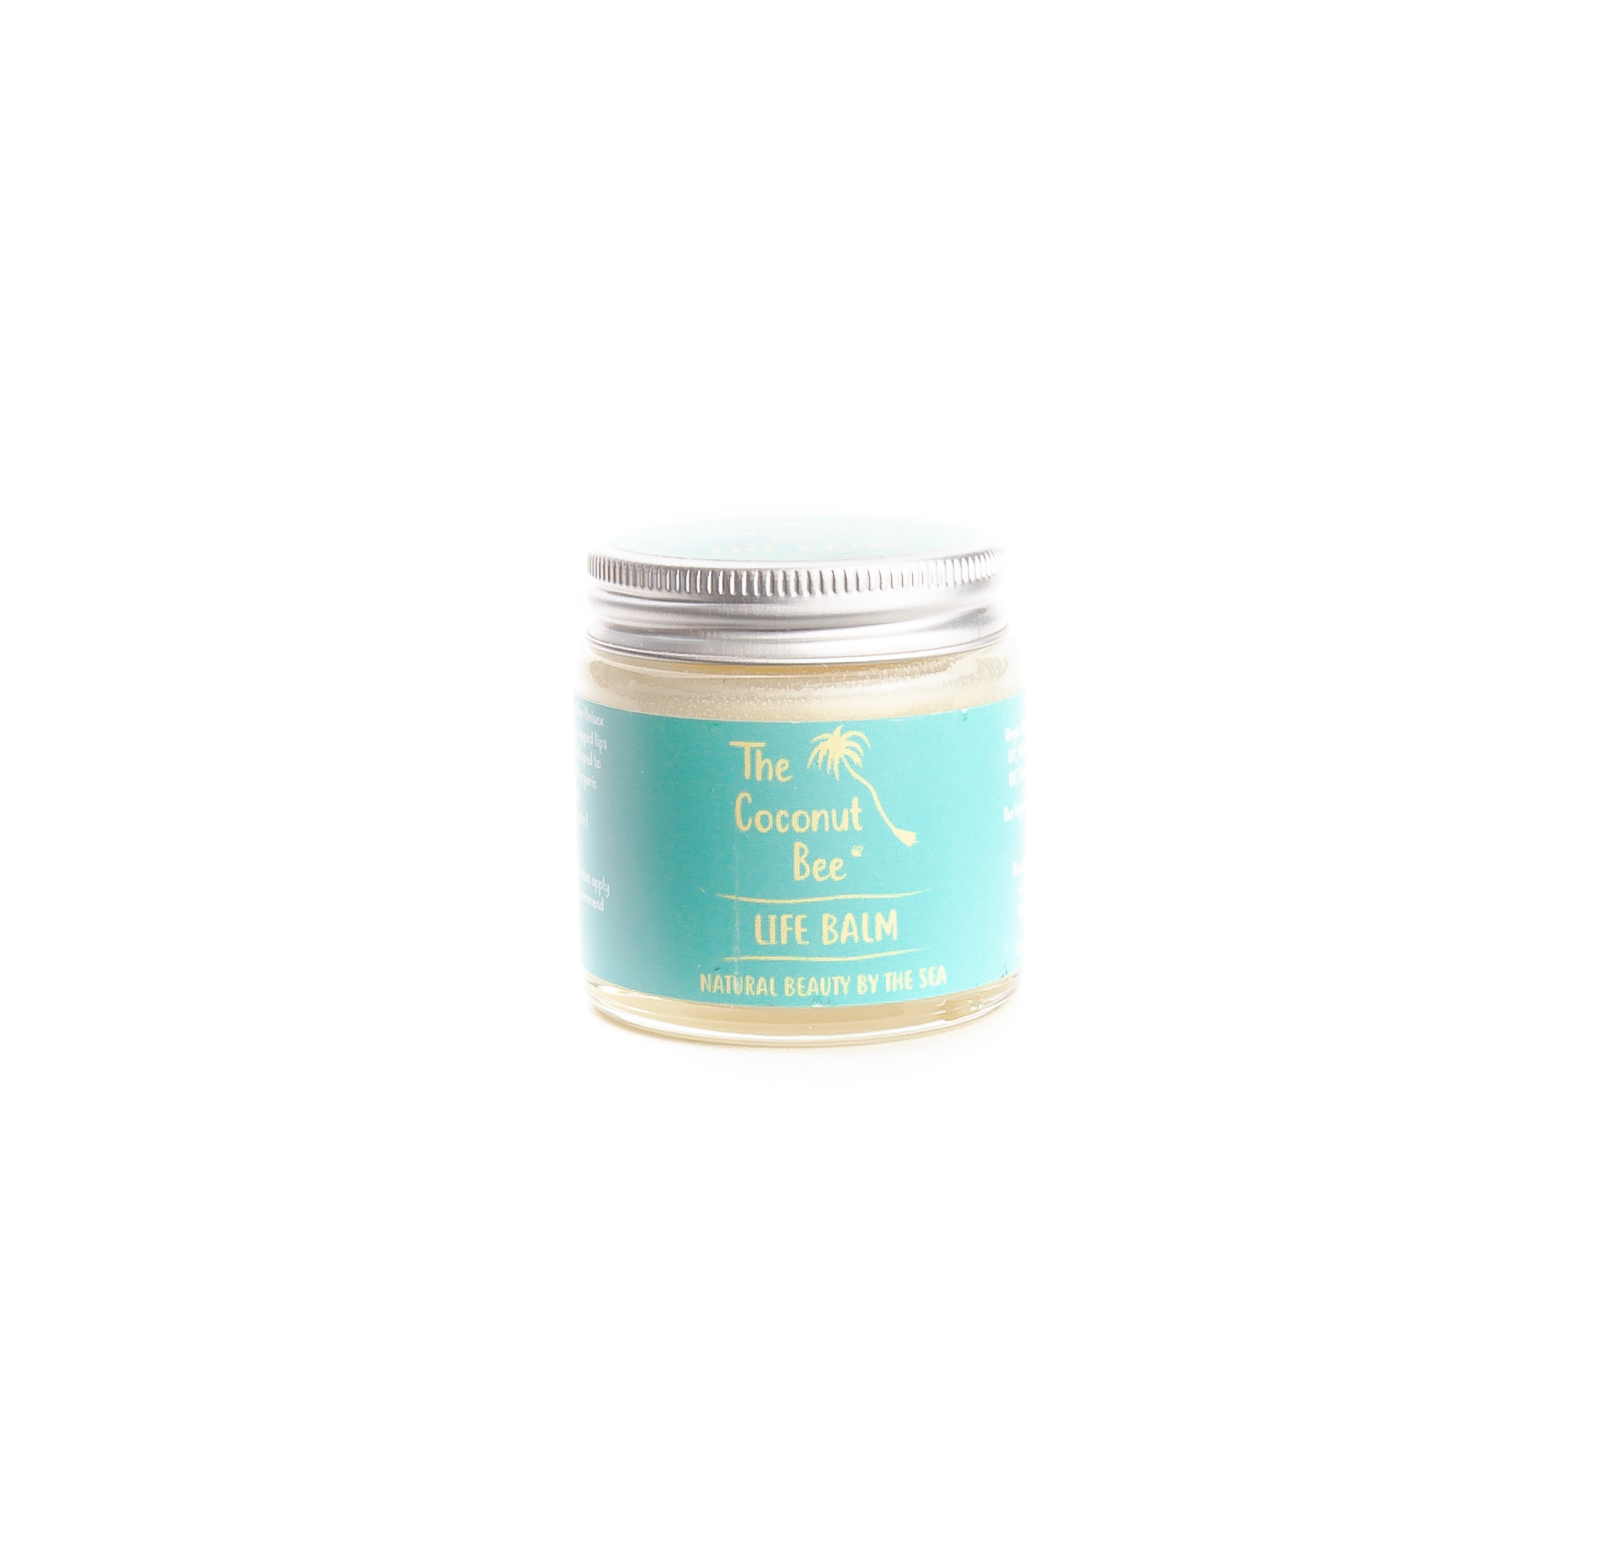 Life Balm | Coconut Bee